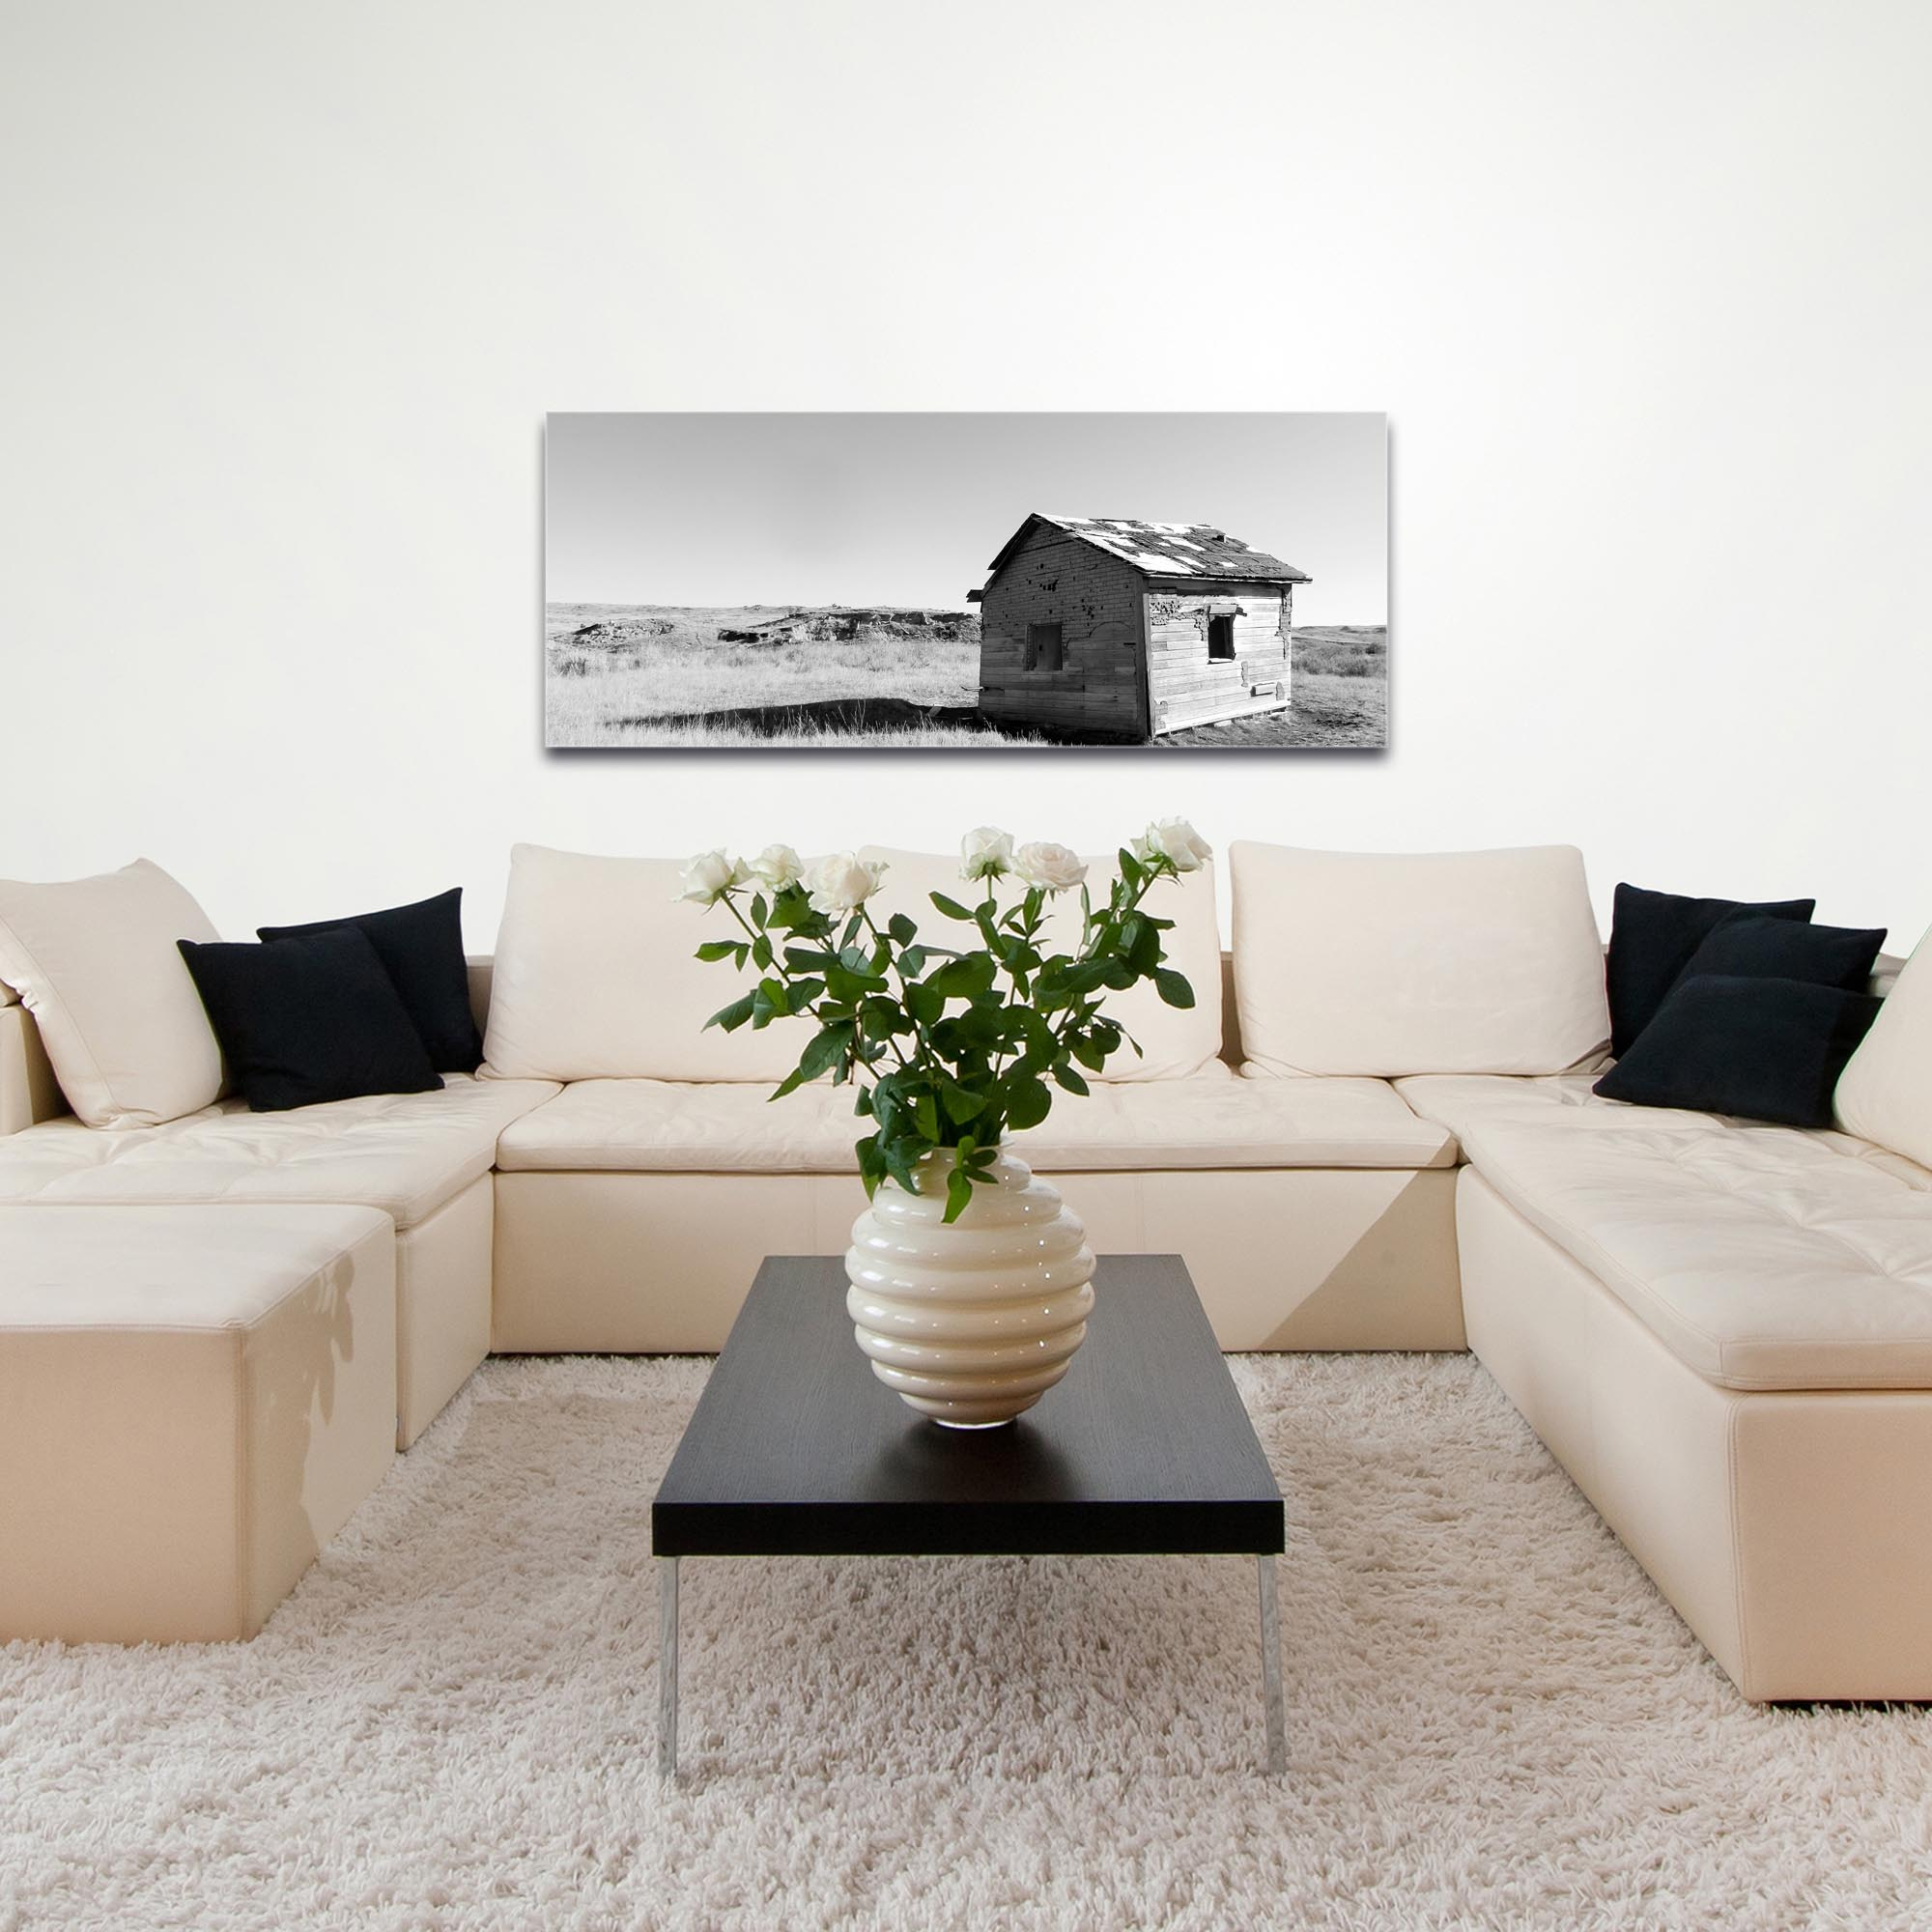 Western Wall Art 'The Shack' - American West Decor on Metal or Plexiglass - Image 3